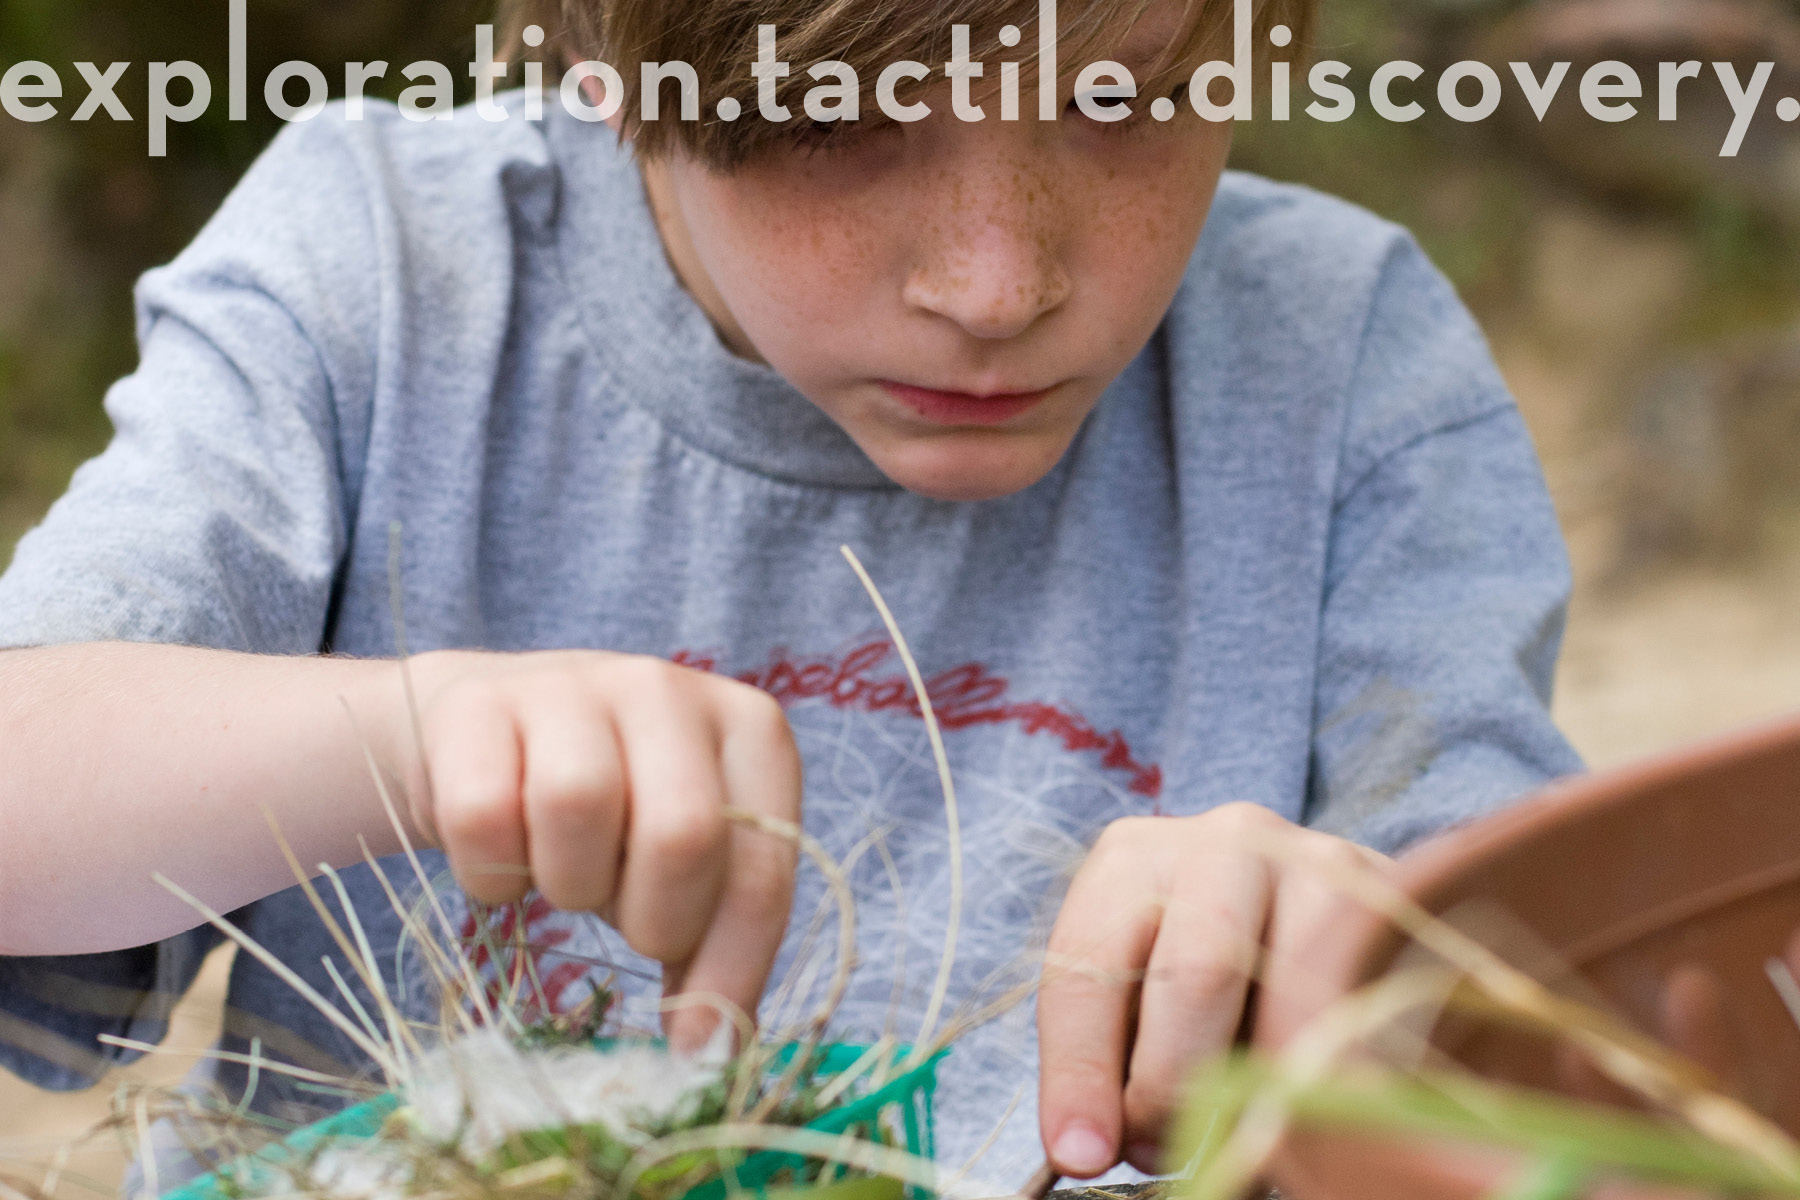 Environmental Education & Field Trip Photographer in Seattle WA | Stefanie Felix Photographer